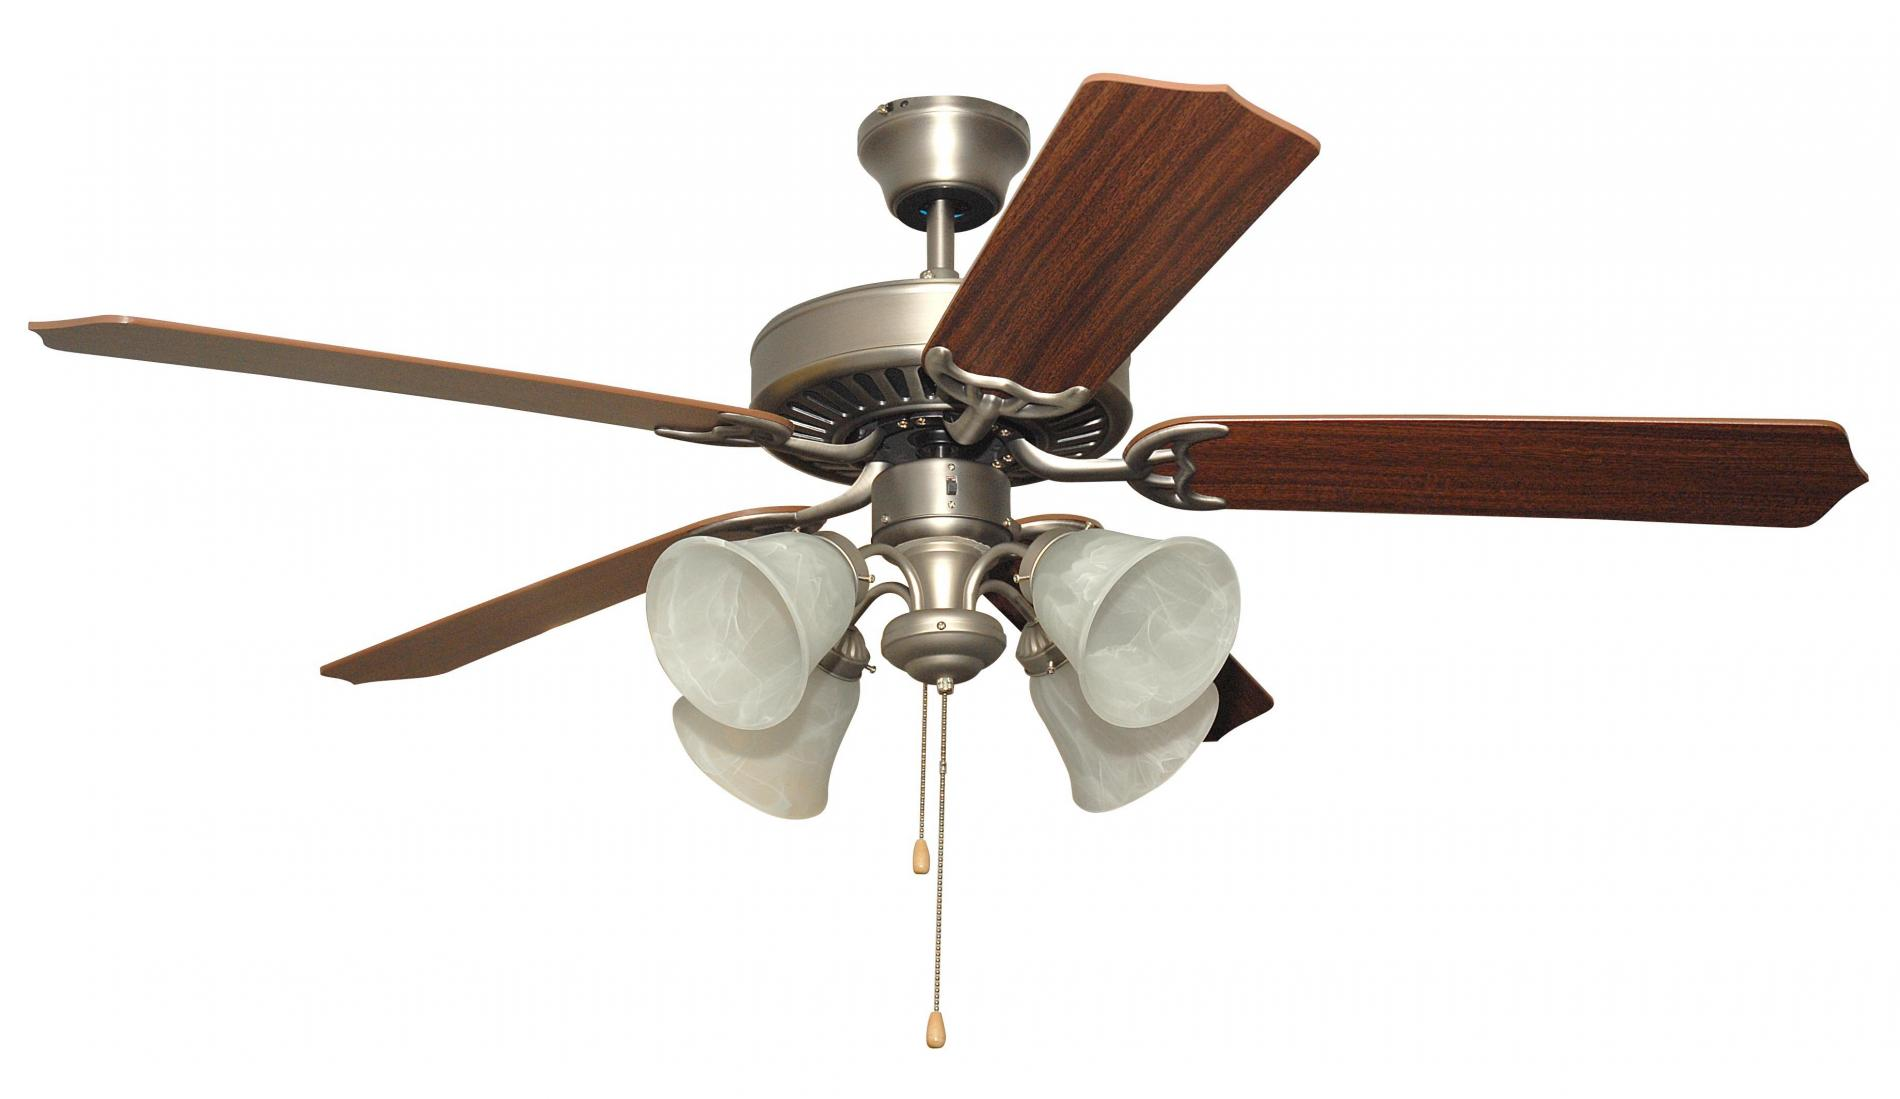 ring the beauty into your home with ceiling fan lamps